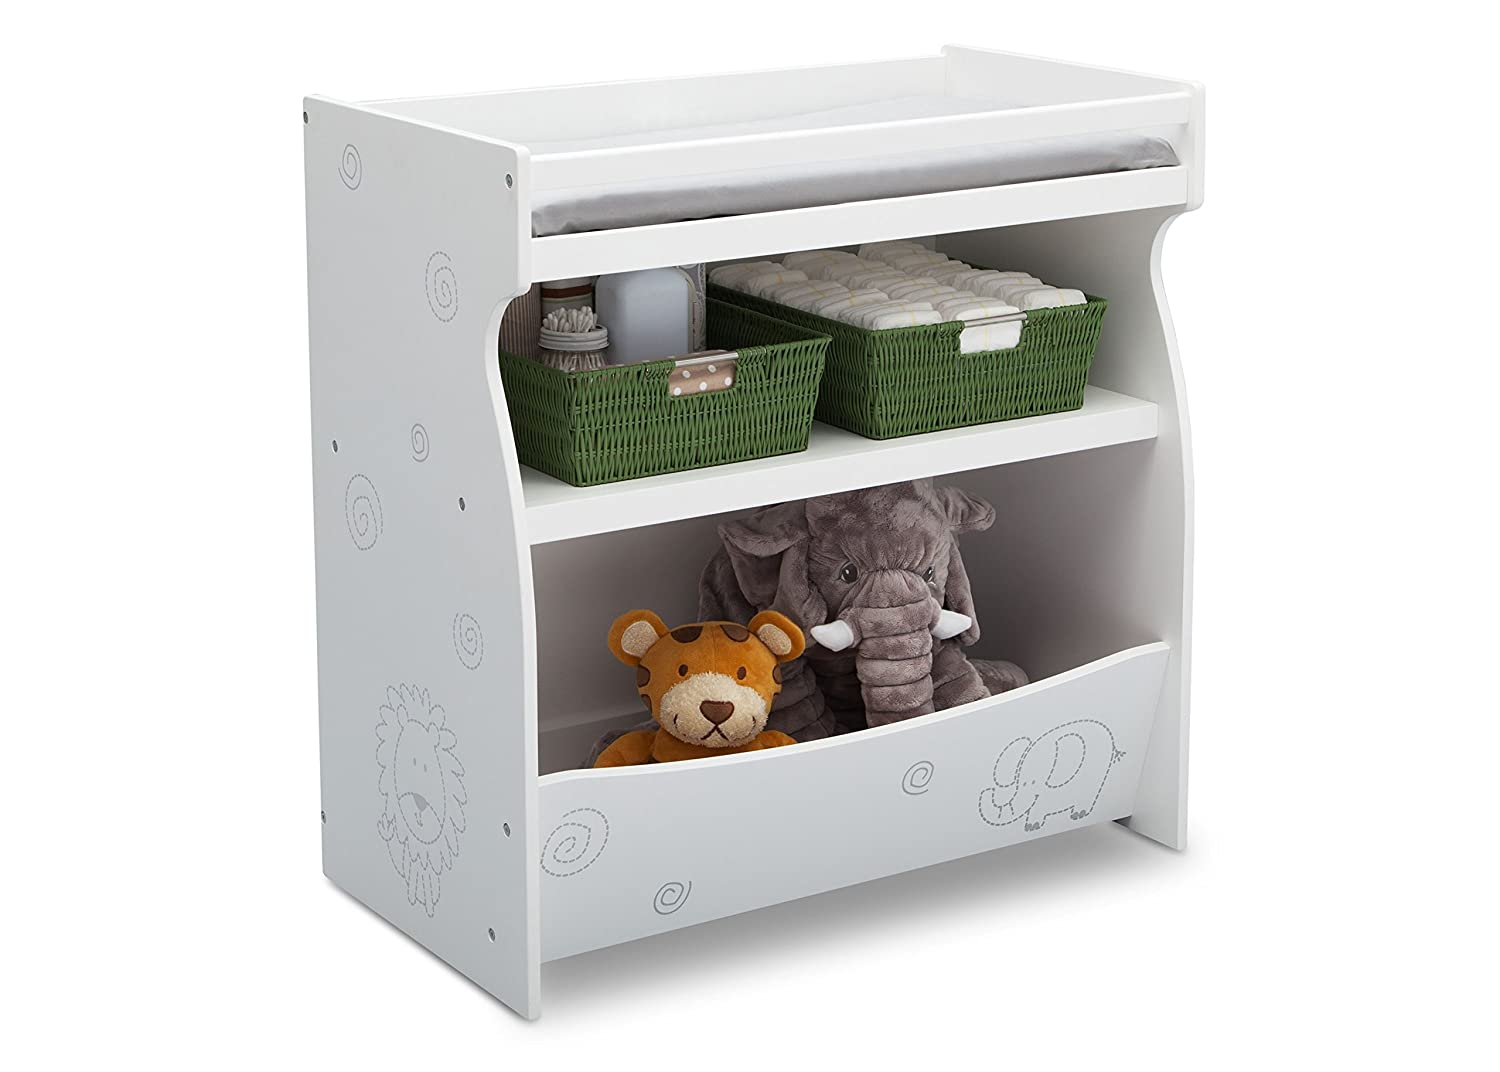 Bianca White with Animal Motif Delta Children 2-in-1 Changing Table and Storage Unit